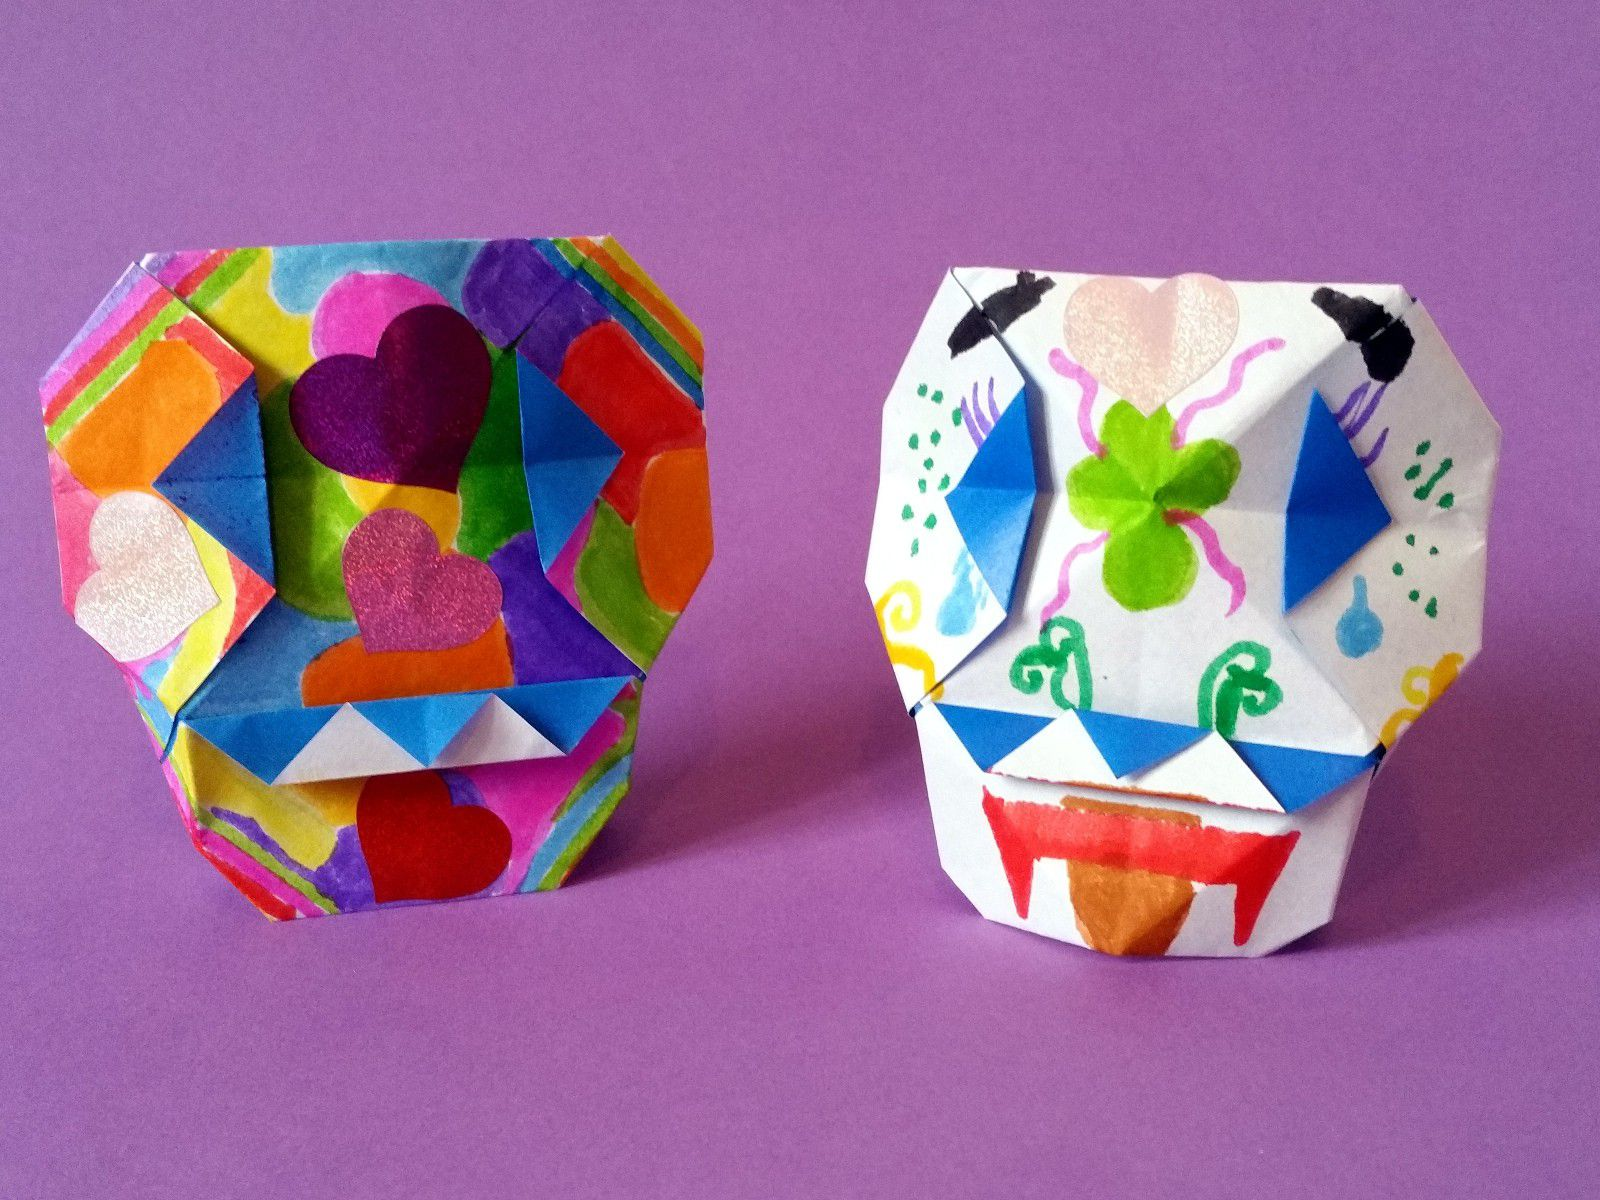 Papercraft Skull With Glowing Eyes : 15 Steps (with Pictures ... | 1200x1600